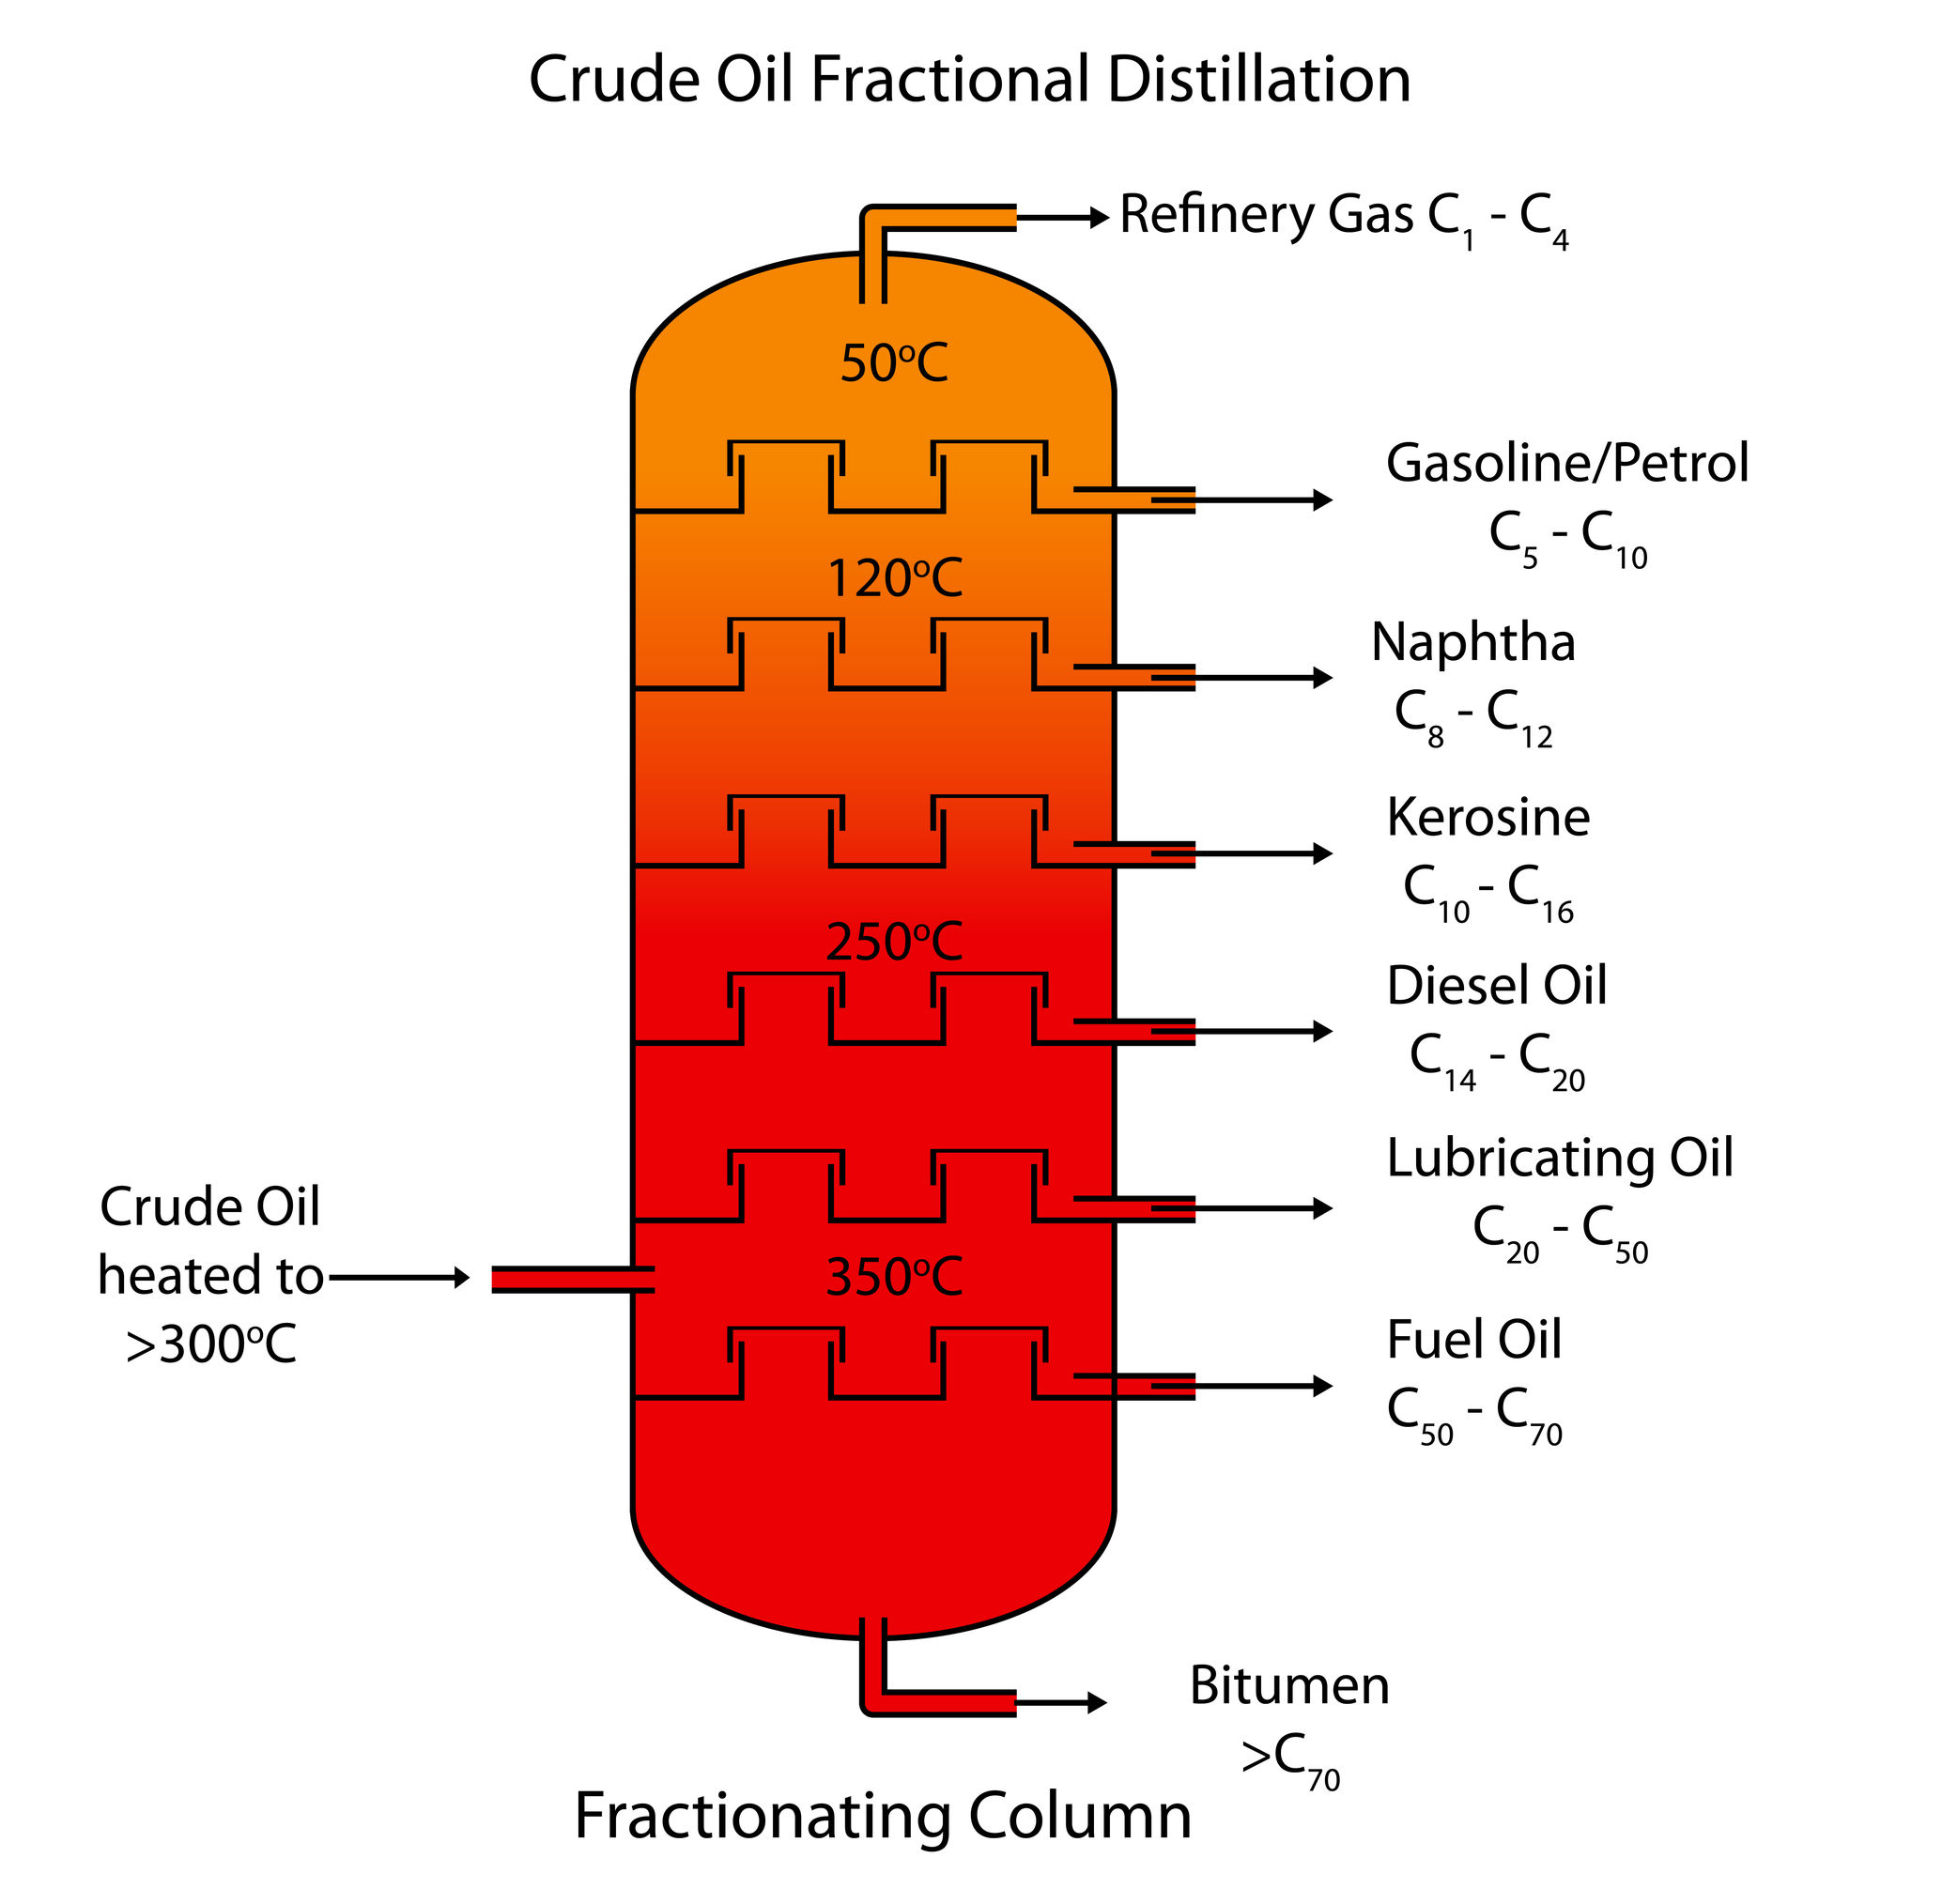 the crude oil distillation engineering essay This work deals with a thermodynamic analysis of crude oil distillation systems to study energy and exergy efficiencies for system analysis, performance evaluation and optimization.